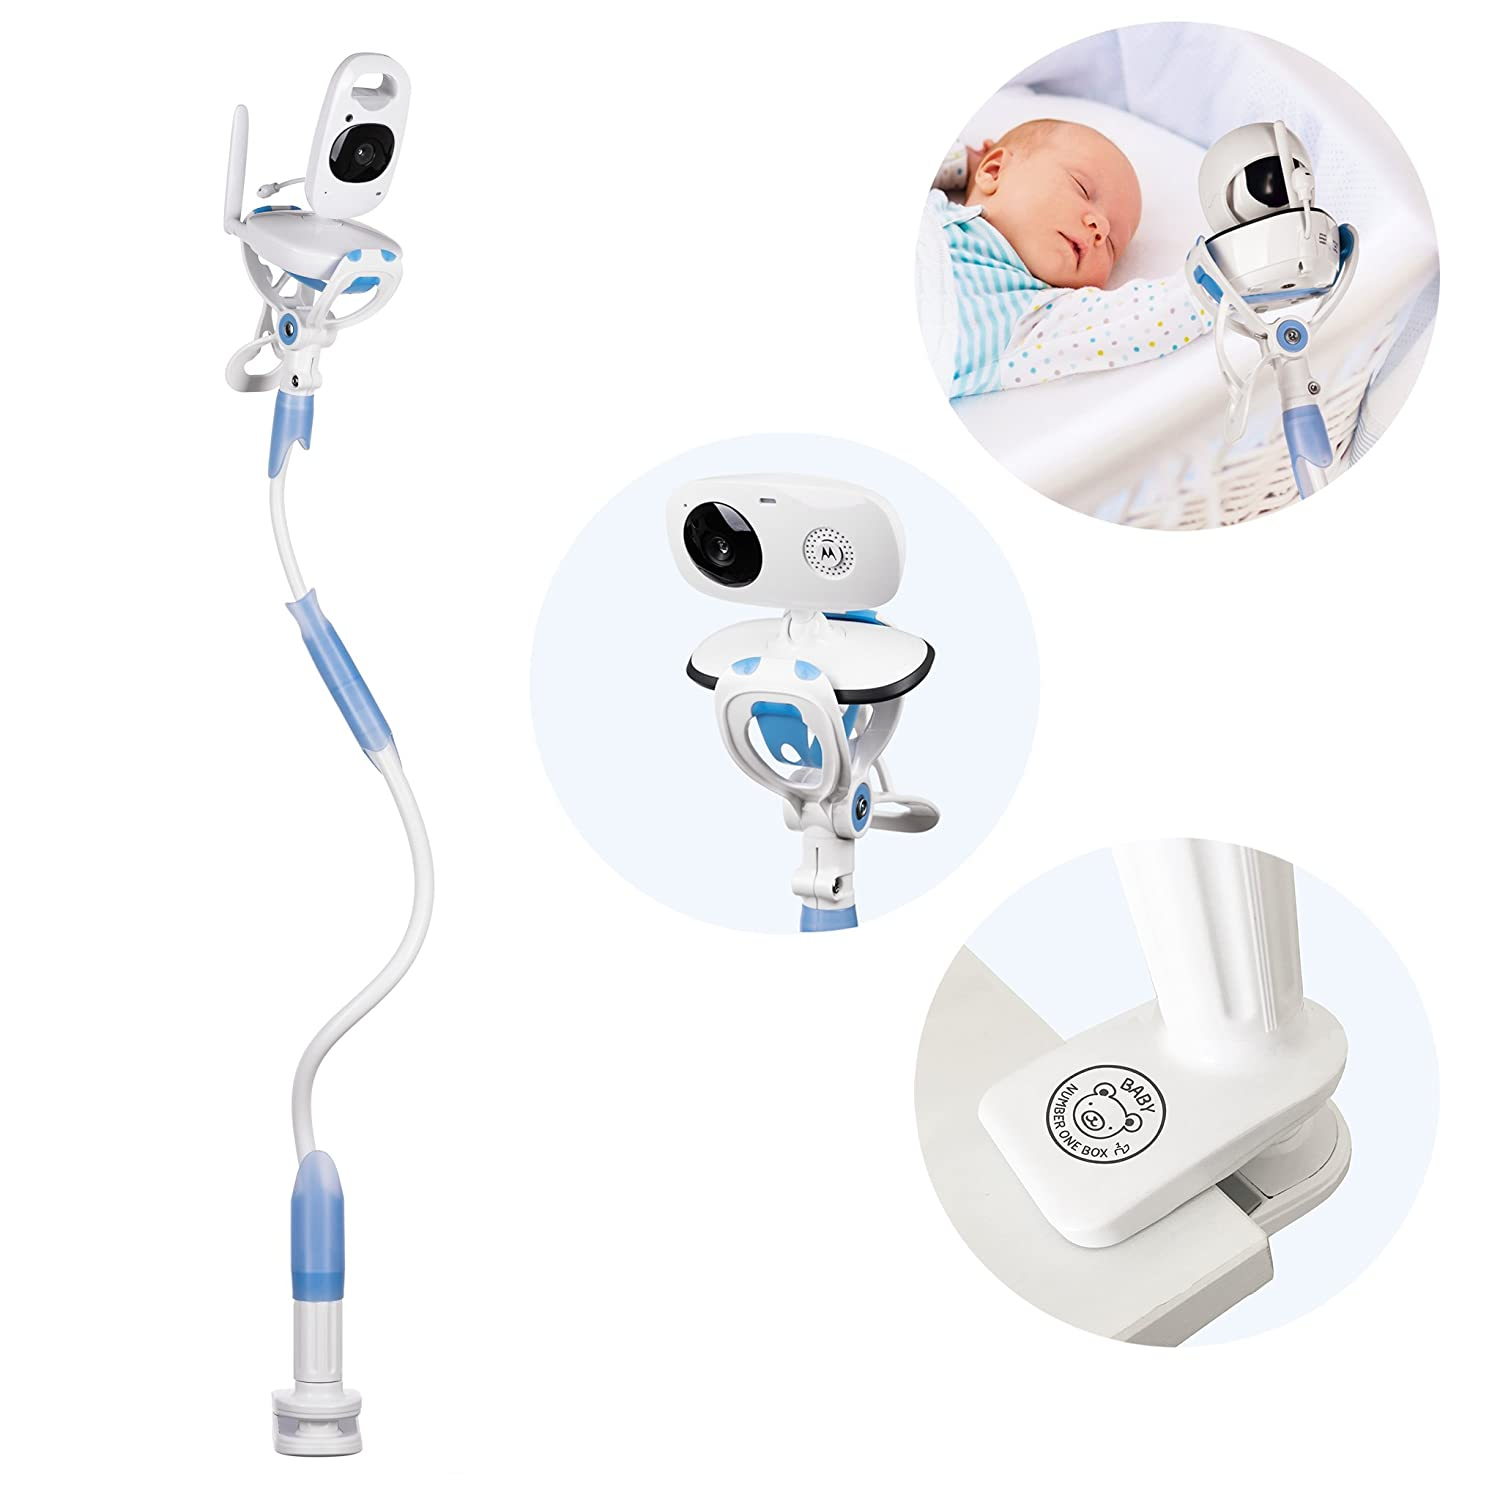 FlexxiCam Universal Baby Camera Mount, Infant Video Monitor Holder and Shelf - Flexible Camera Stand for Nursery Compatible with Most Baby Monitors NUMBER ONE BOX 469766